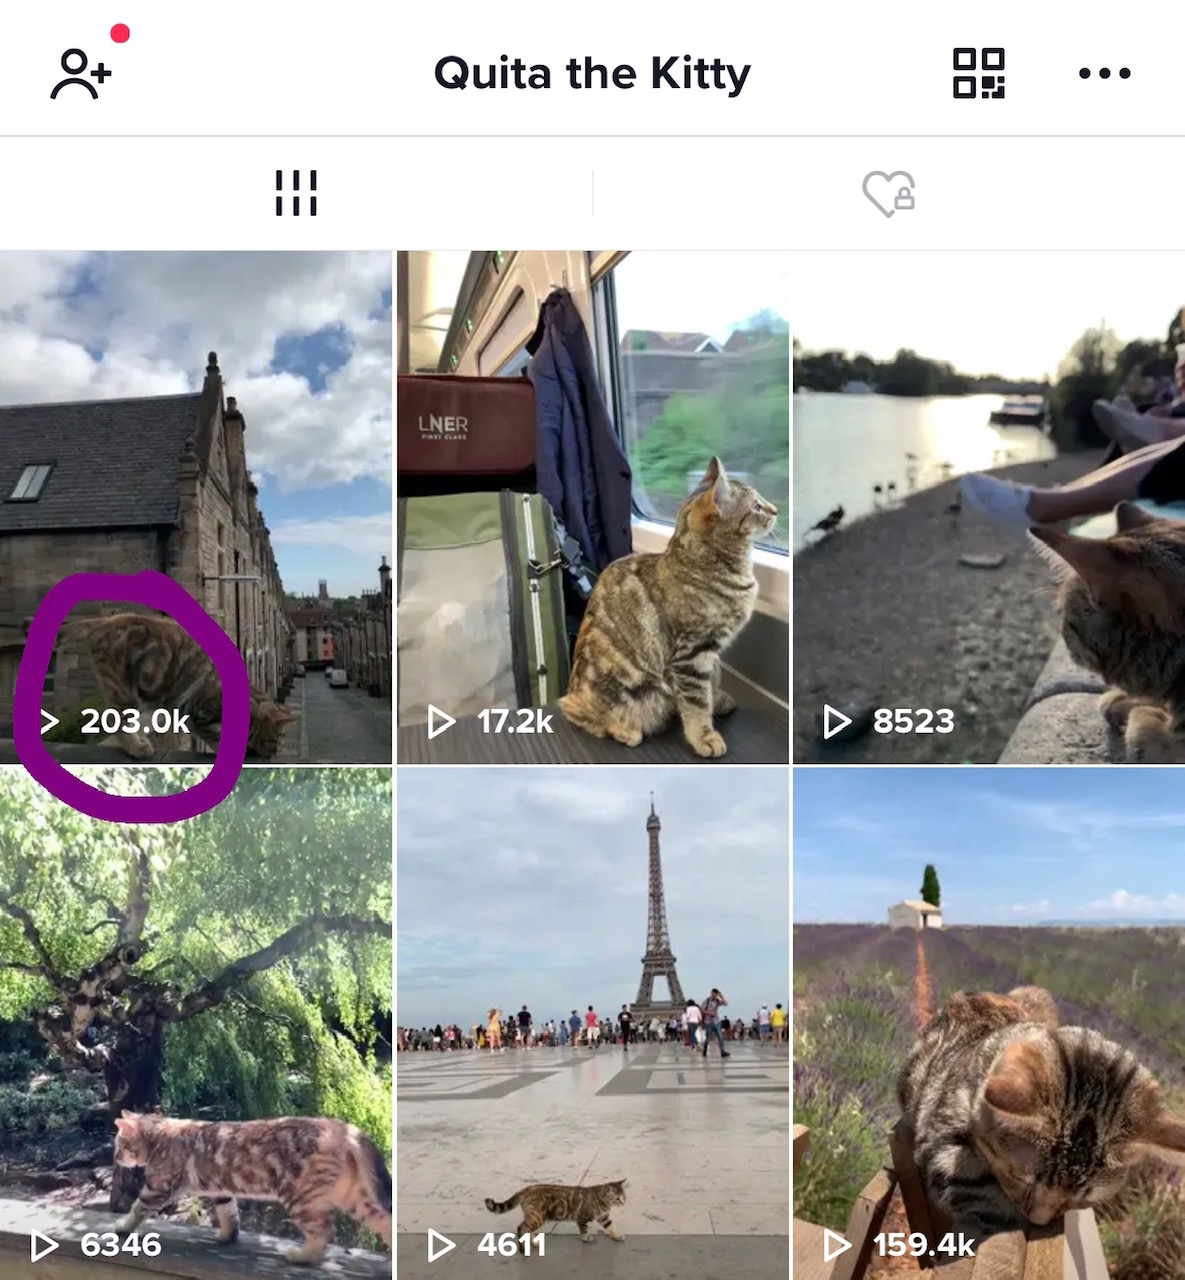 2019-08-01 (Quita the Kitty) TikTok Edinburgh video view count